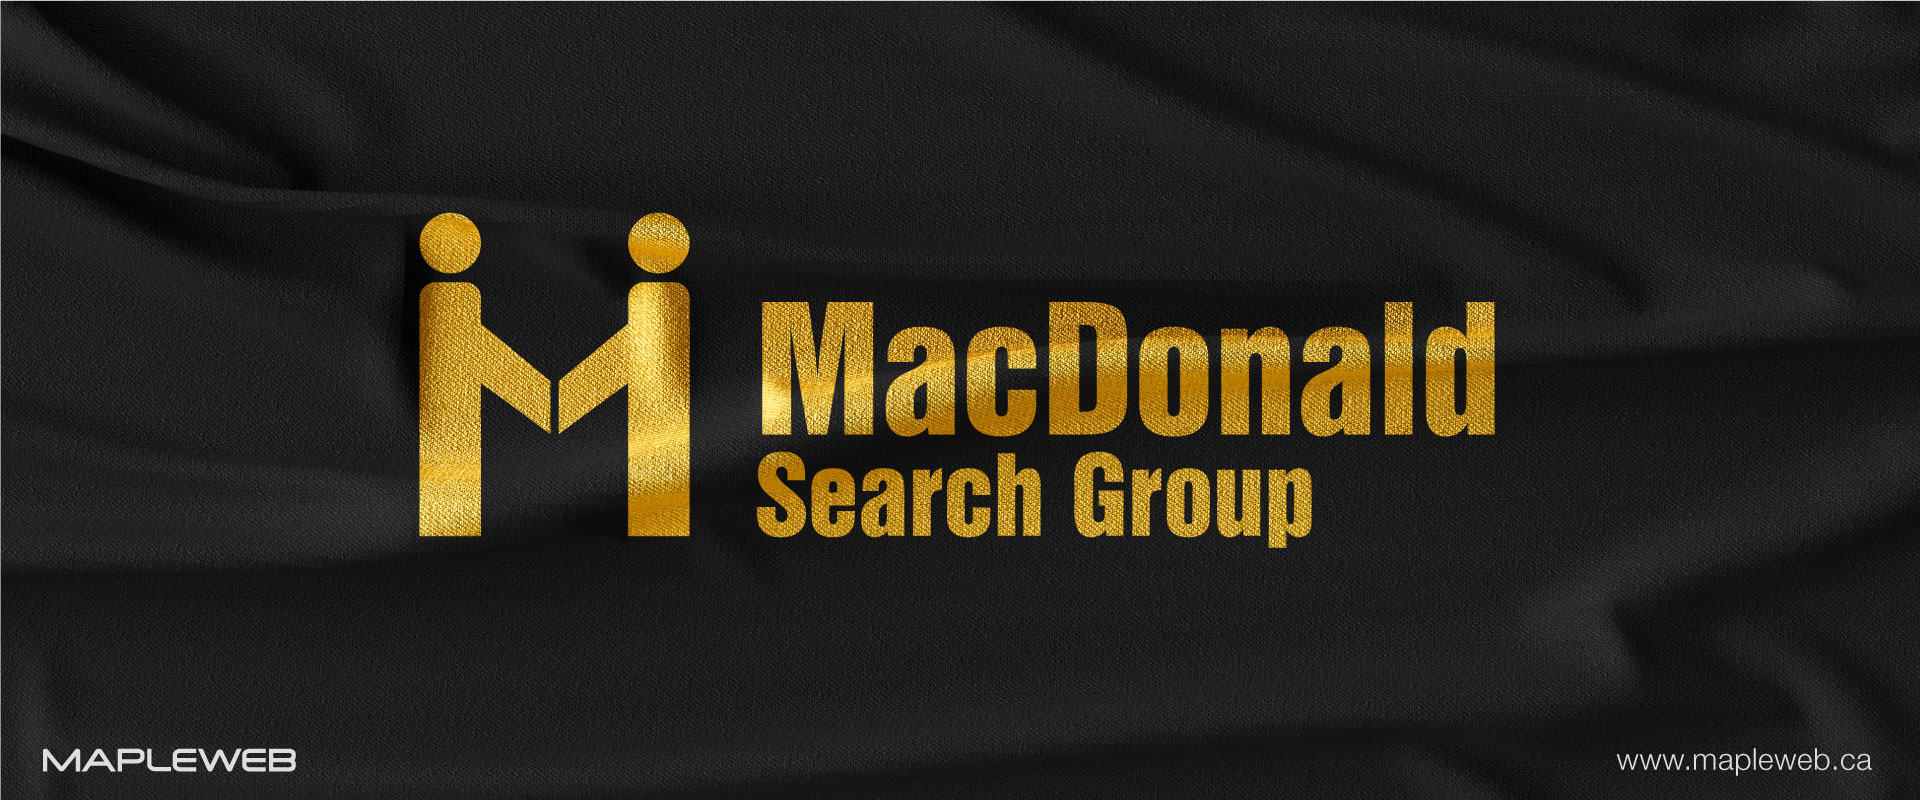 macdonald-search-group-brand-logo-design-by-mapleweb-vancouver-canada-embroidery-mock